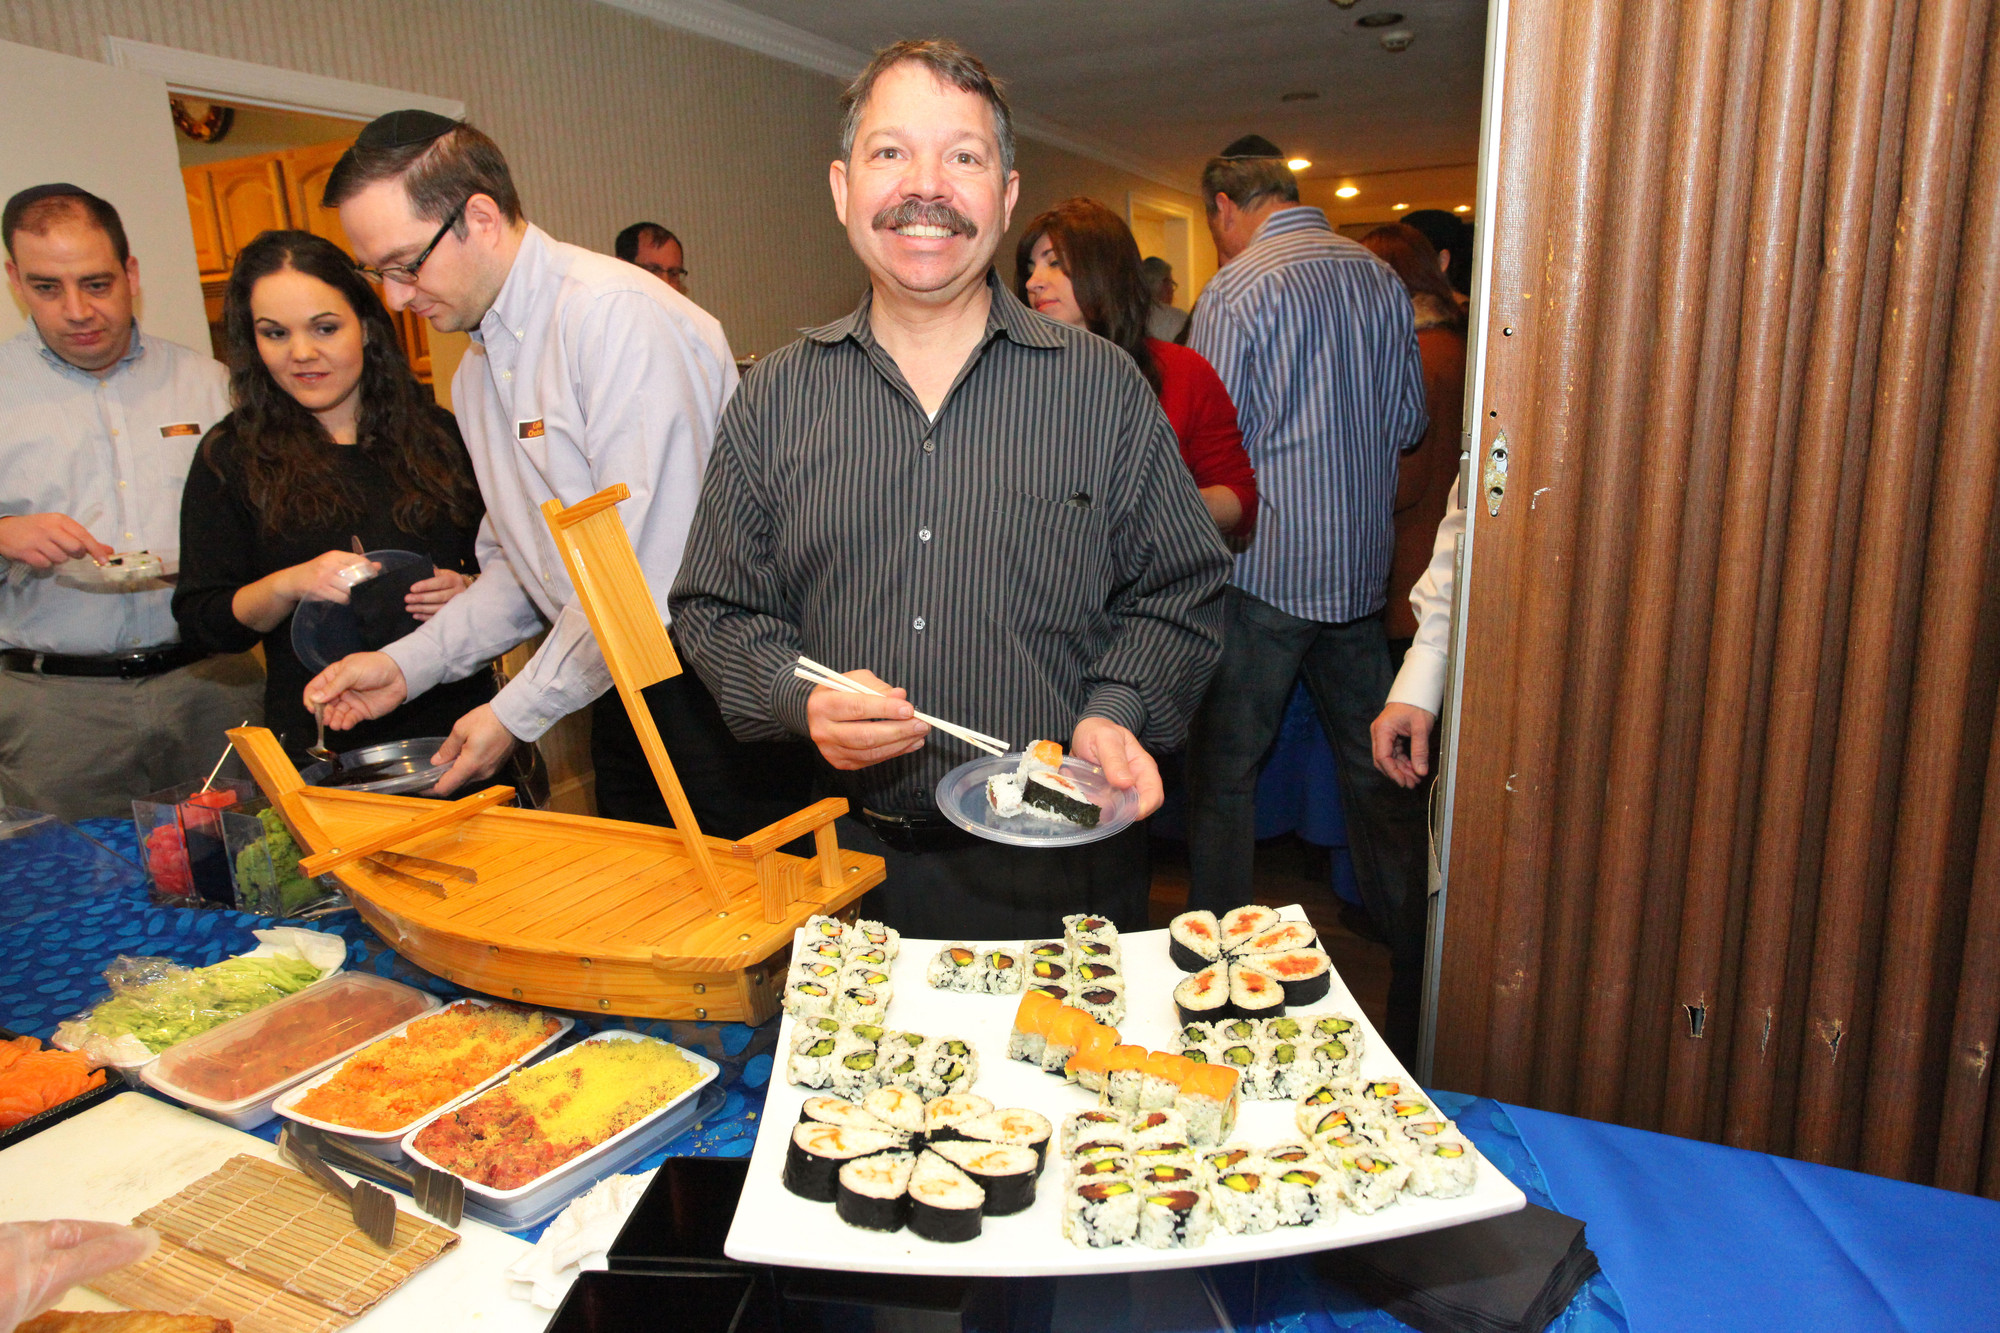 The sushi bar attracted many guests, including Woodmere resident Scott Langstein.